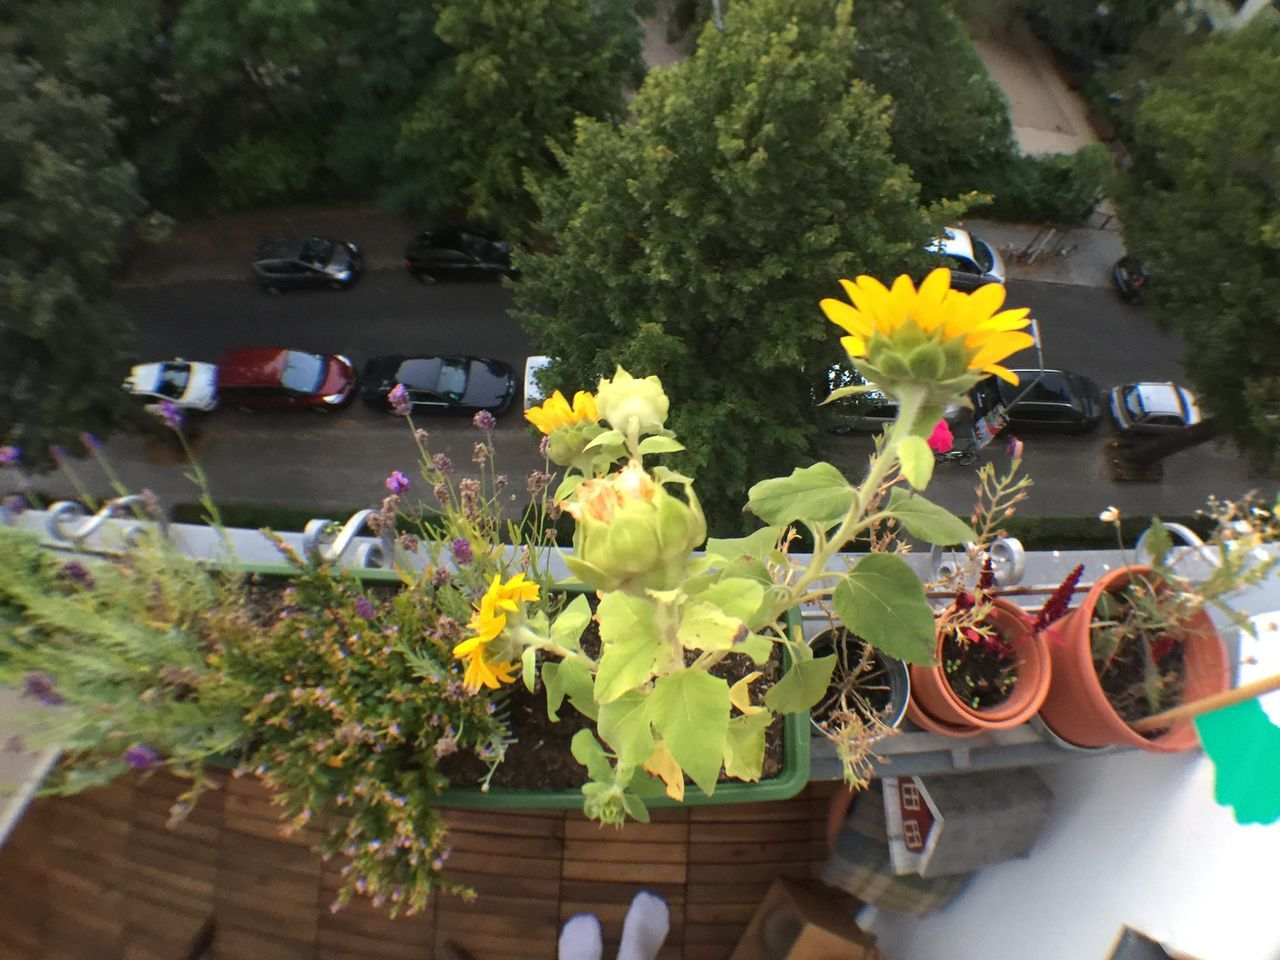 Arrangement Balcony Balcony View Beauty In Nature Blossom Botany Bouquet Bunch Of Flowers Flower Flower Arrangement Flower Head Flower Pot Flower Shop Fragility Freshness Growth In Bloom Land Vehicle Mode Of Transport Petal Plant Transportation Vacations Variation Yellow